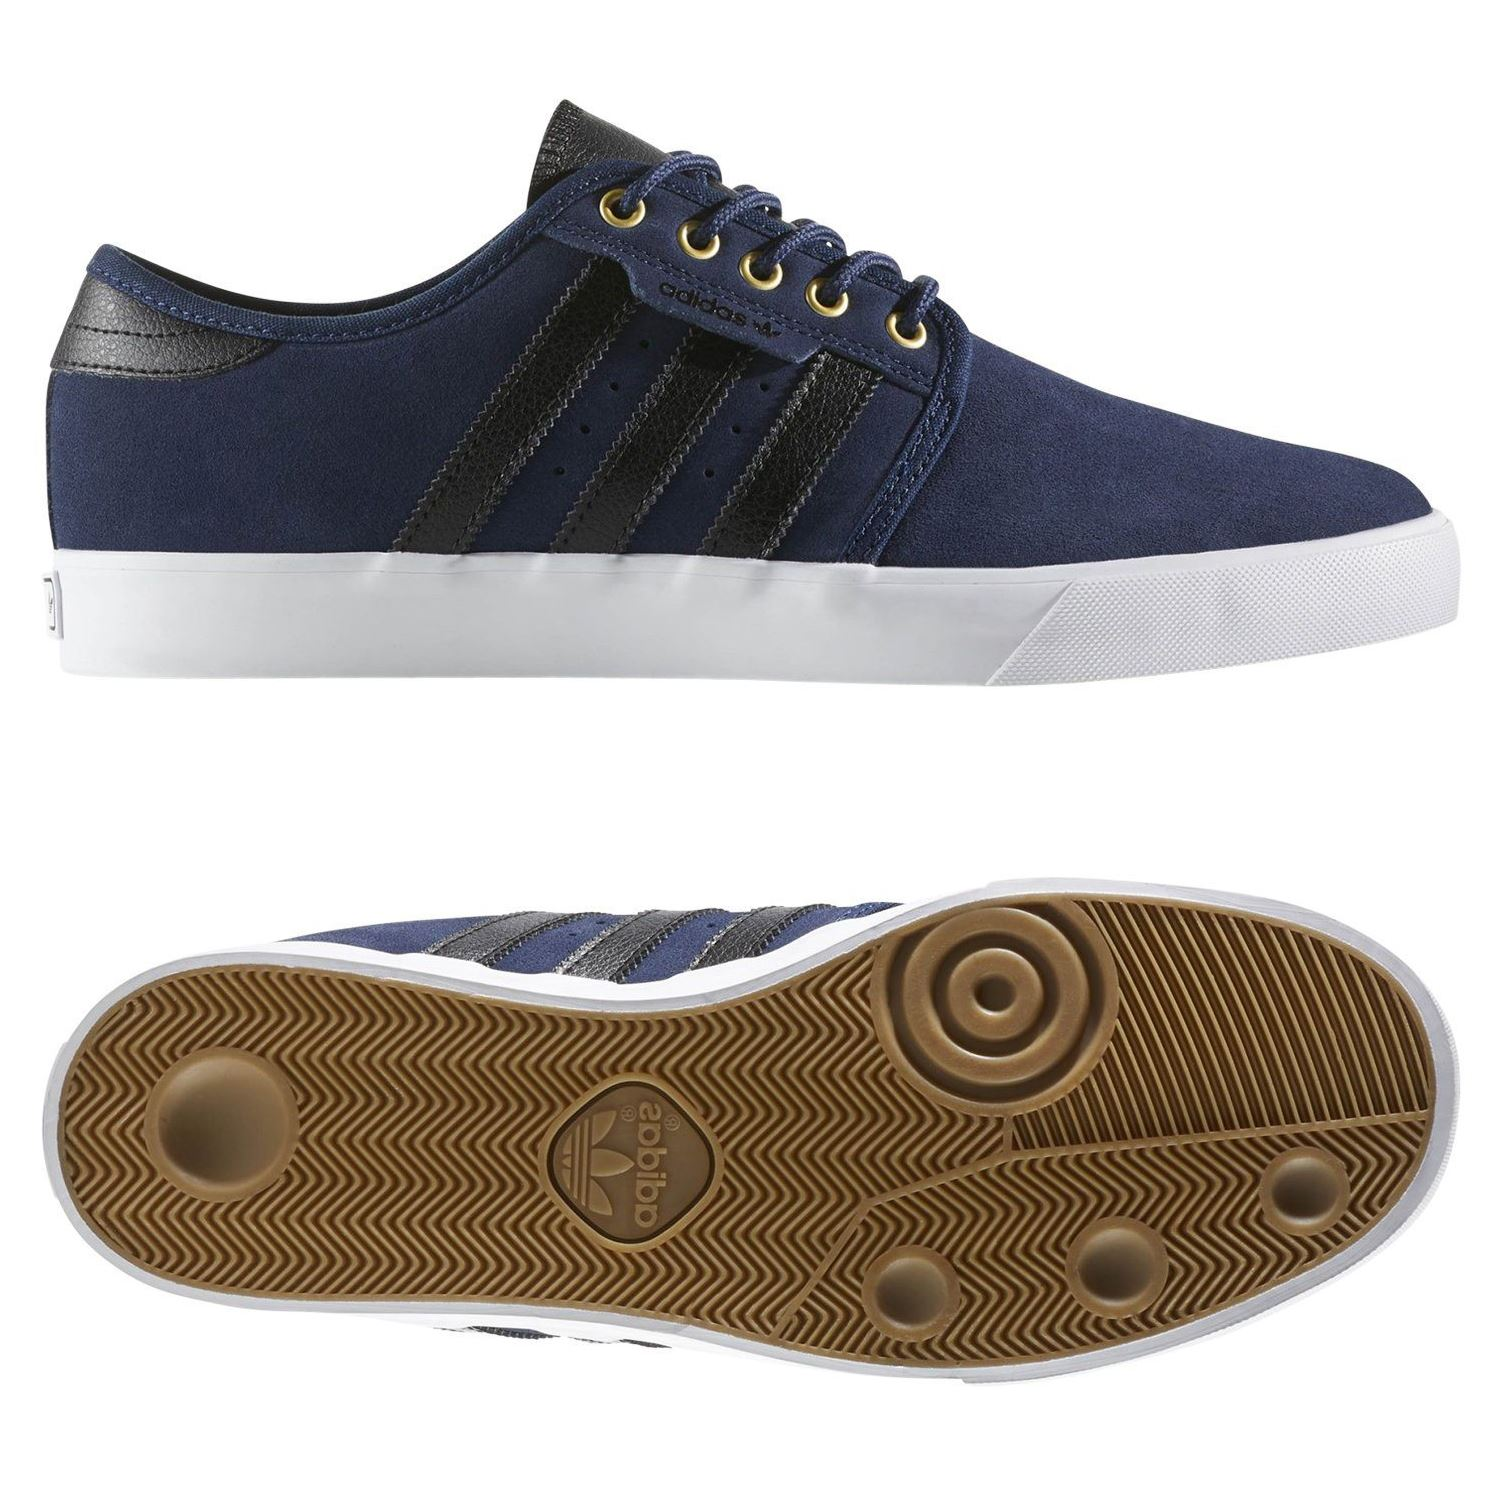 newest collection 60137 1ab63 SEELEY formatori SKATEBOARDING SNEAKERS scarpe ADIDAS ORIGINALS uomo blu